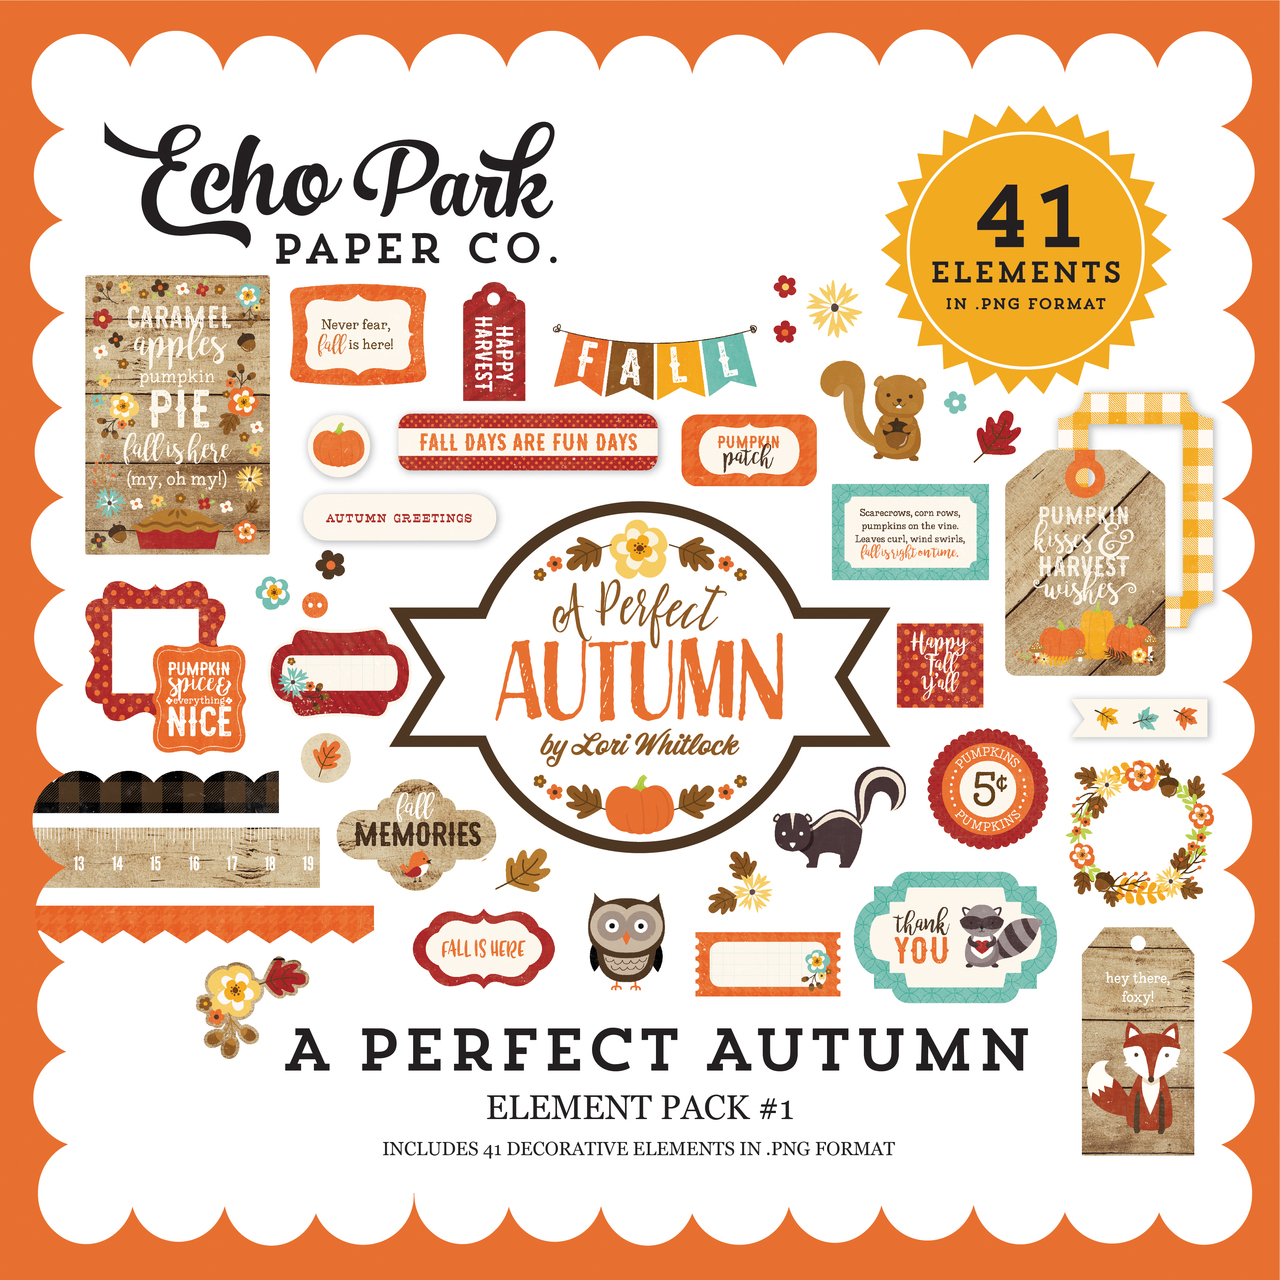 A Perfect Autumn Element Pack #1